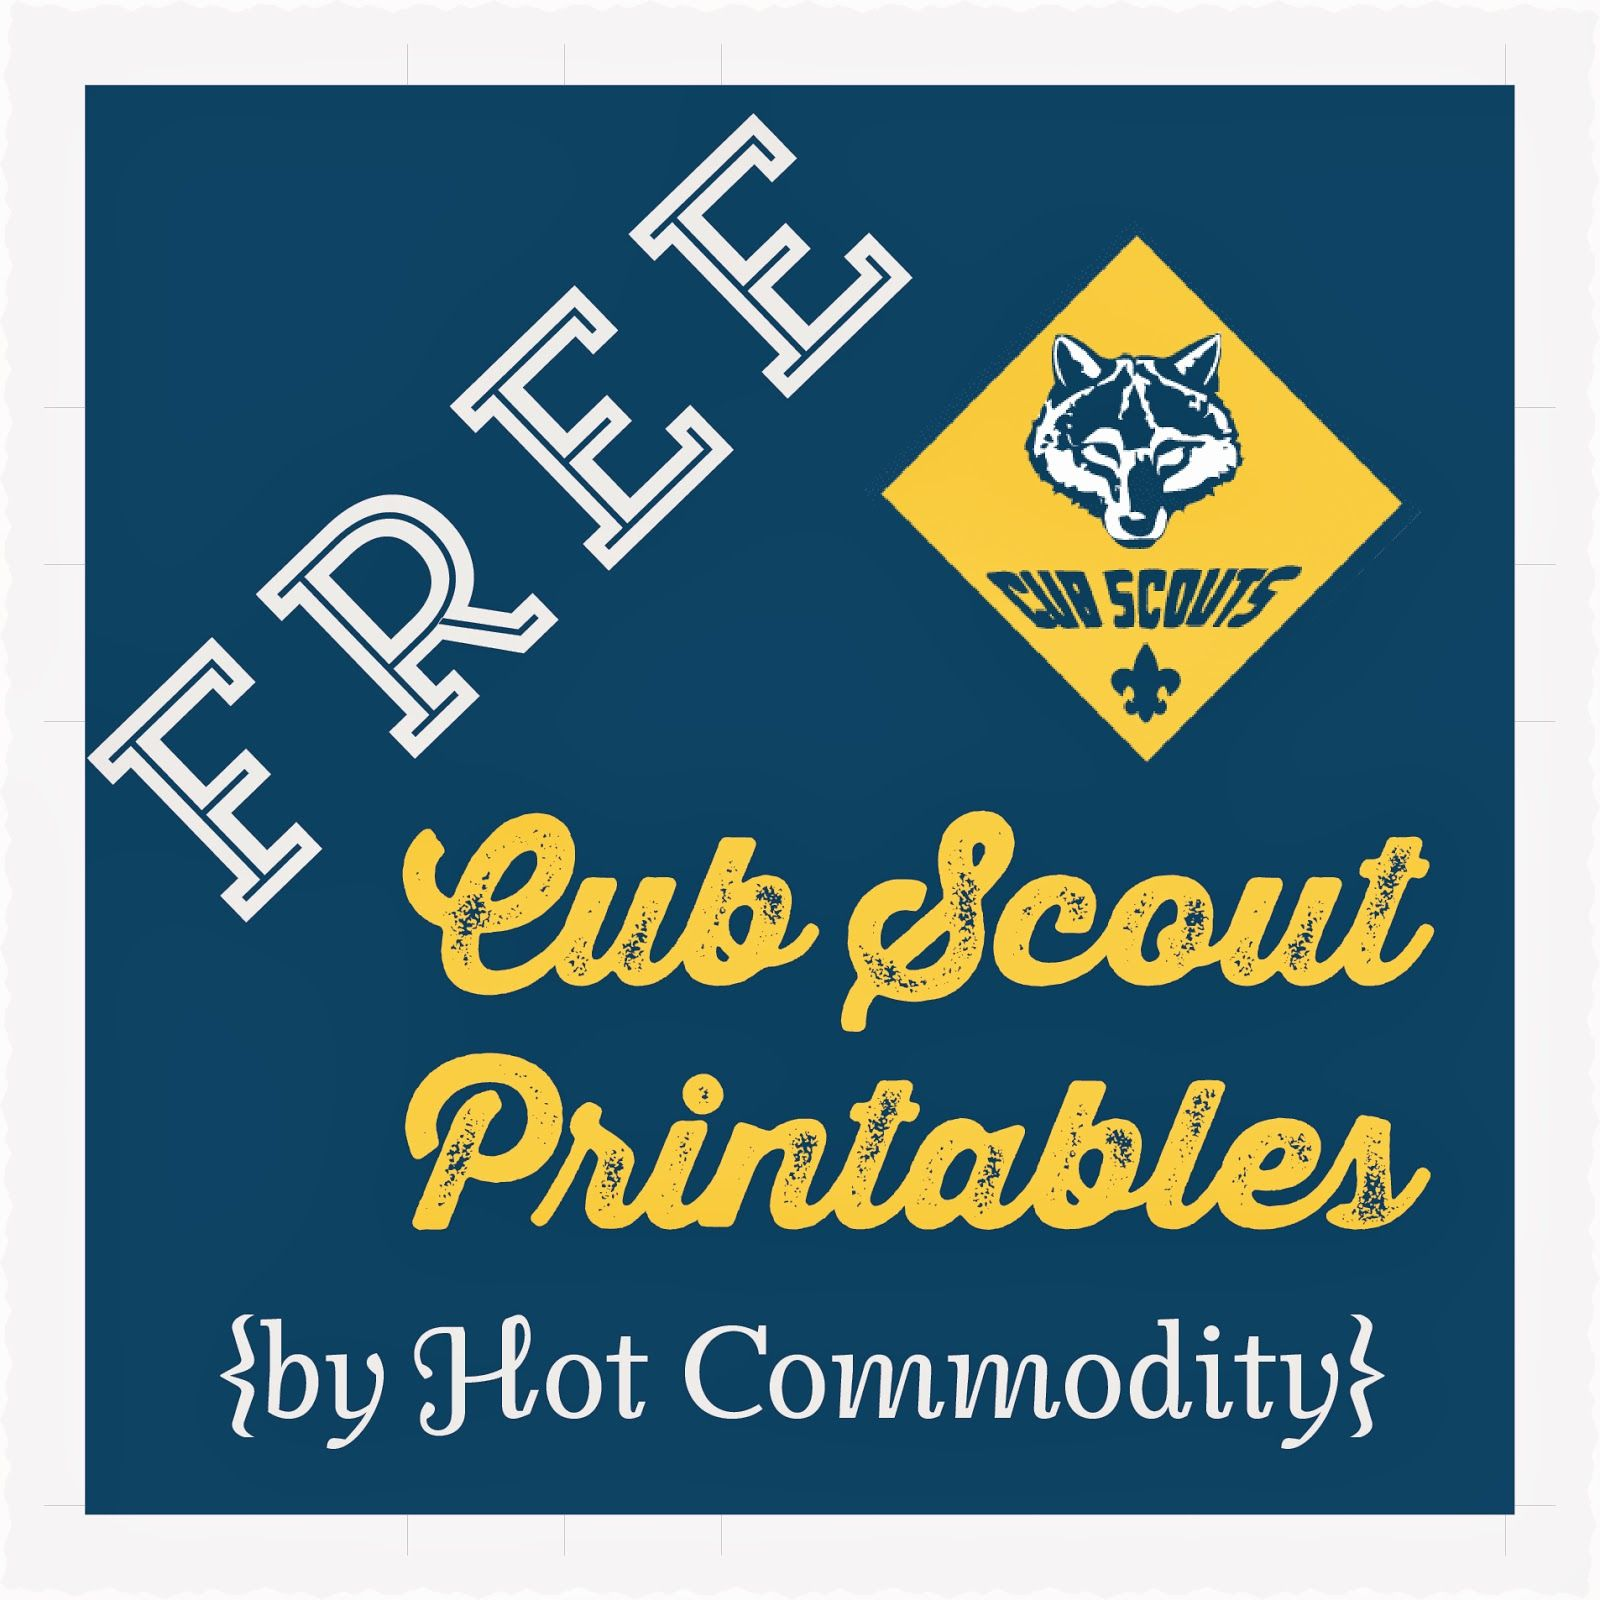 photo about Cub Scout Printable called Pin upon Cub scouts